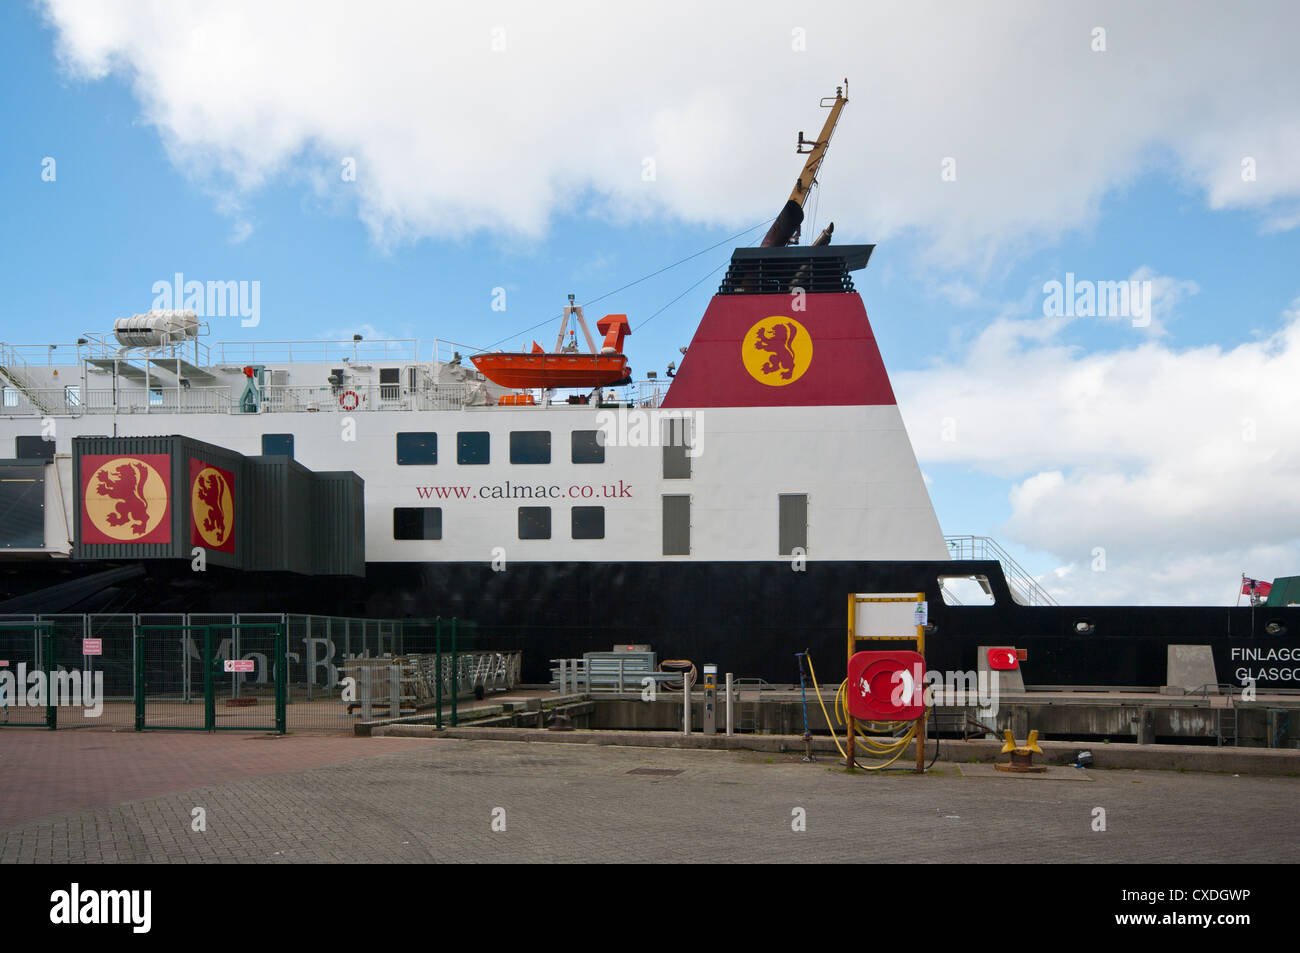 The Caledonian Macbrain Car and Passenger Ferry Finlaggan Glagow Docked In Oban Argyll and Bute Scotland Stock Photo